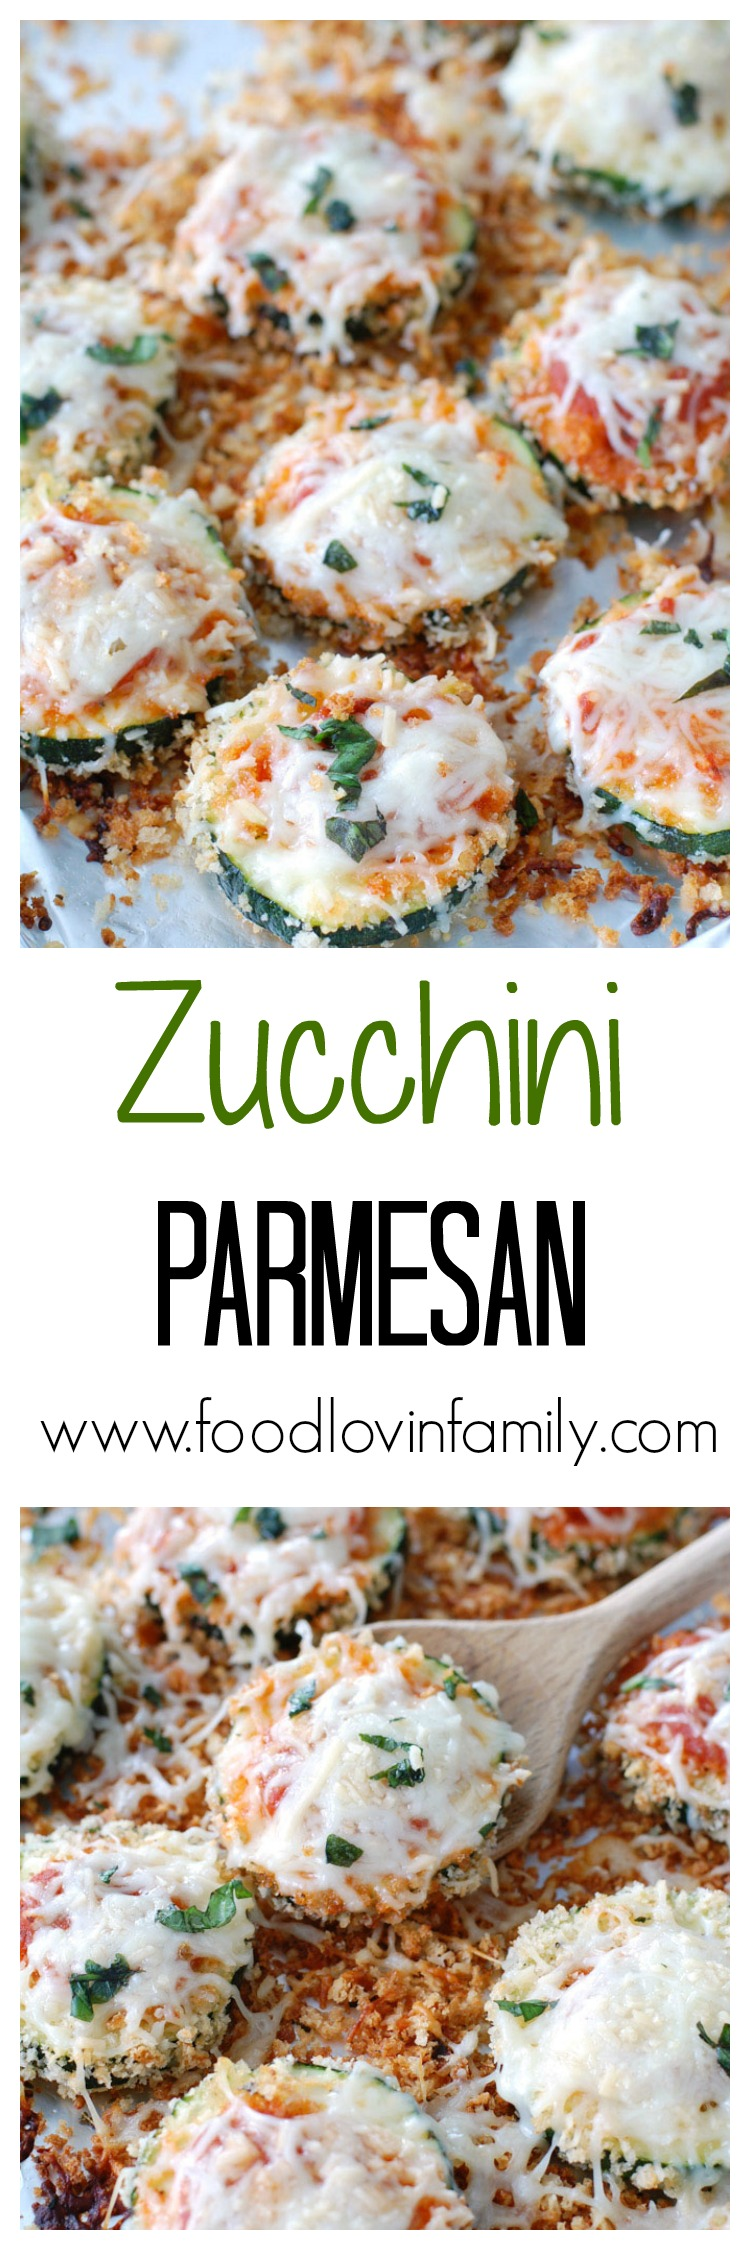 Zucchini Parmesan is a great way to use leftover zucchinis and makes a perfect meatless Monday meal.